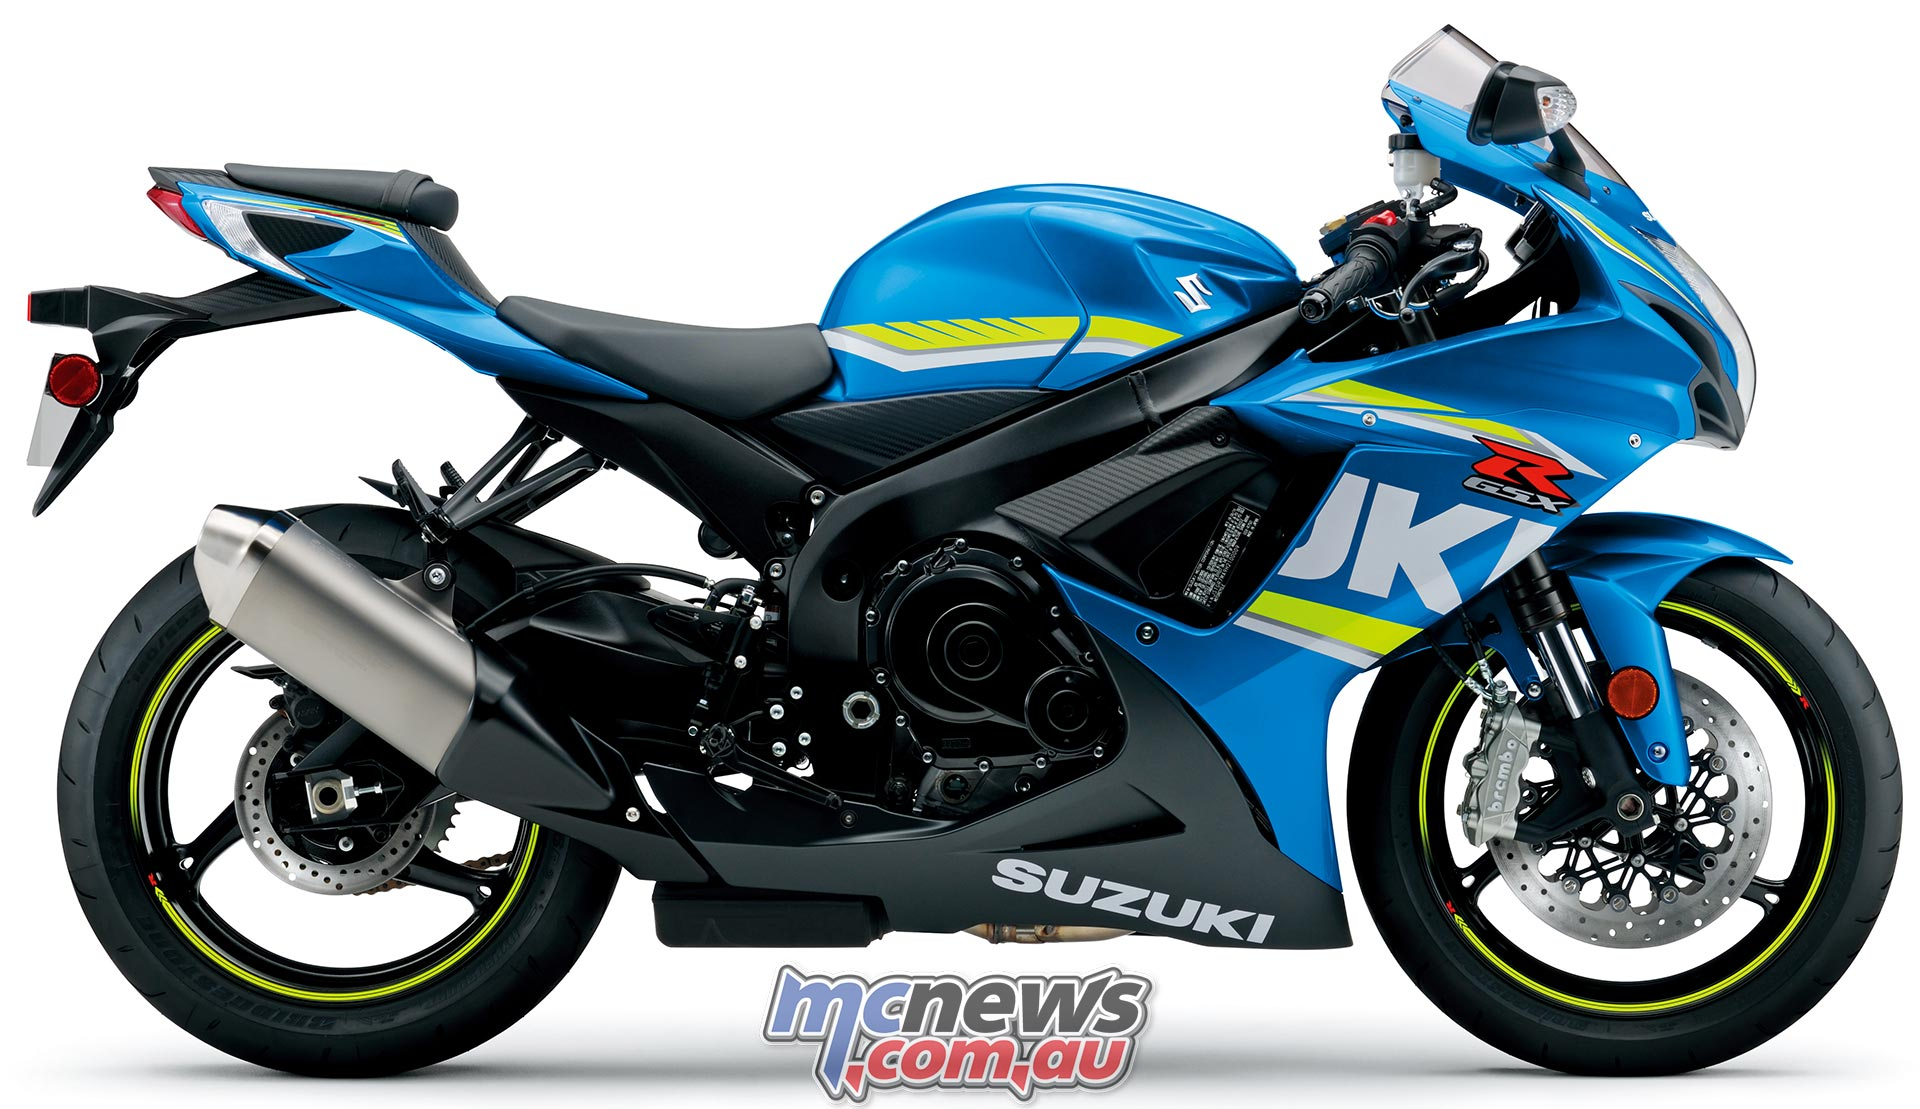 Suzuki gsx-r photo - 5